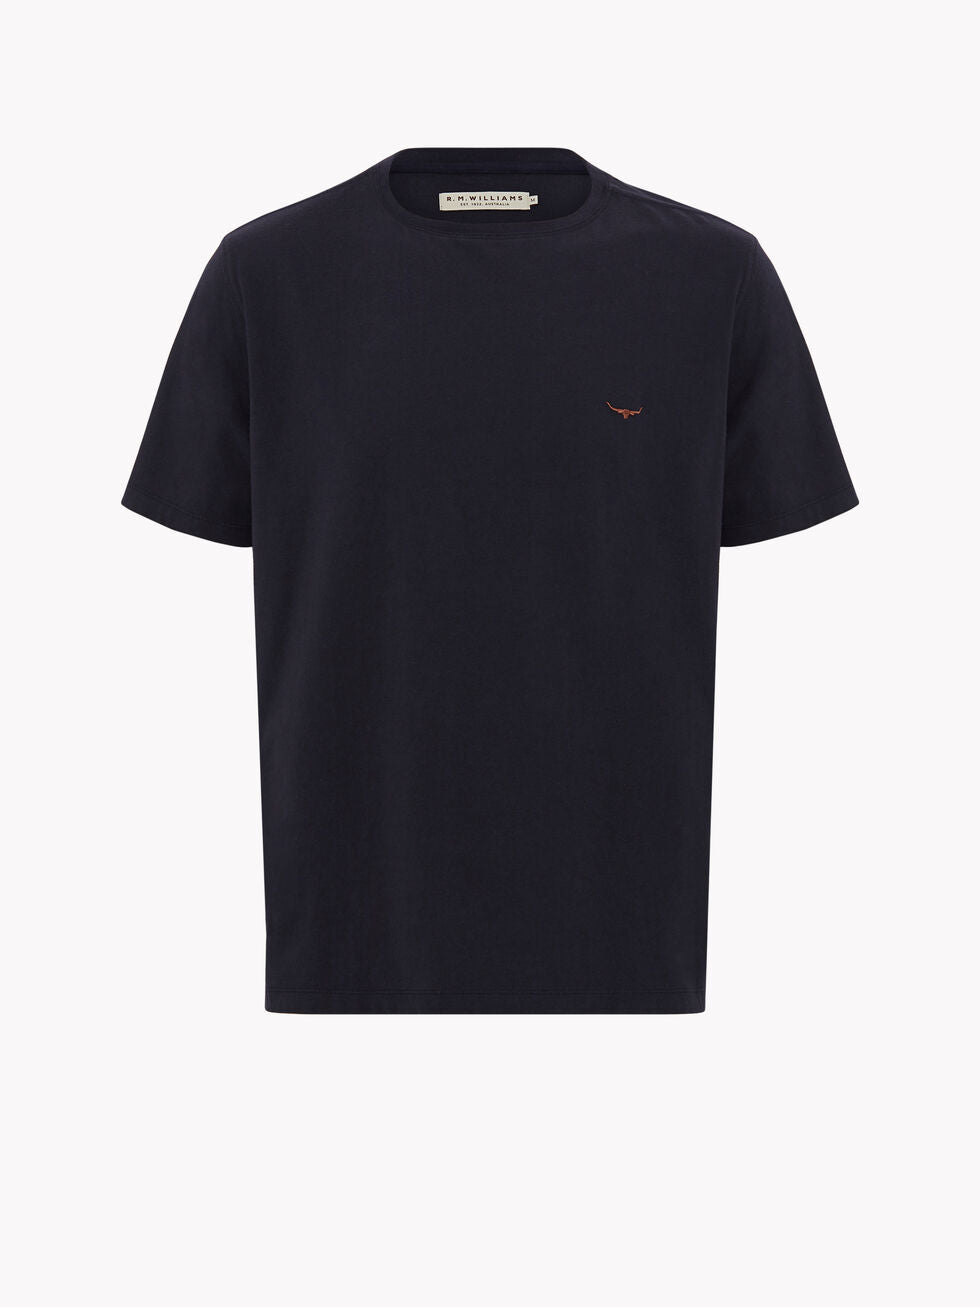 RM Williams Parson Tee, from Harley & Rose